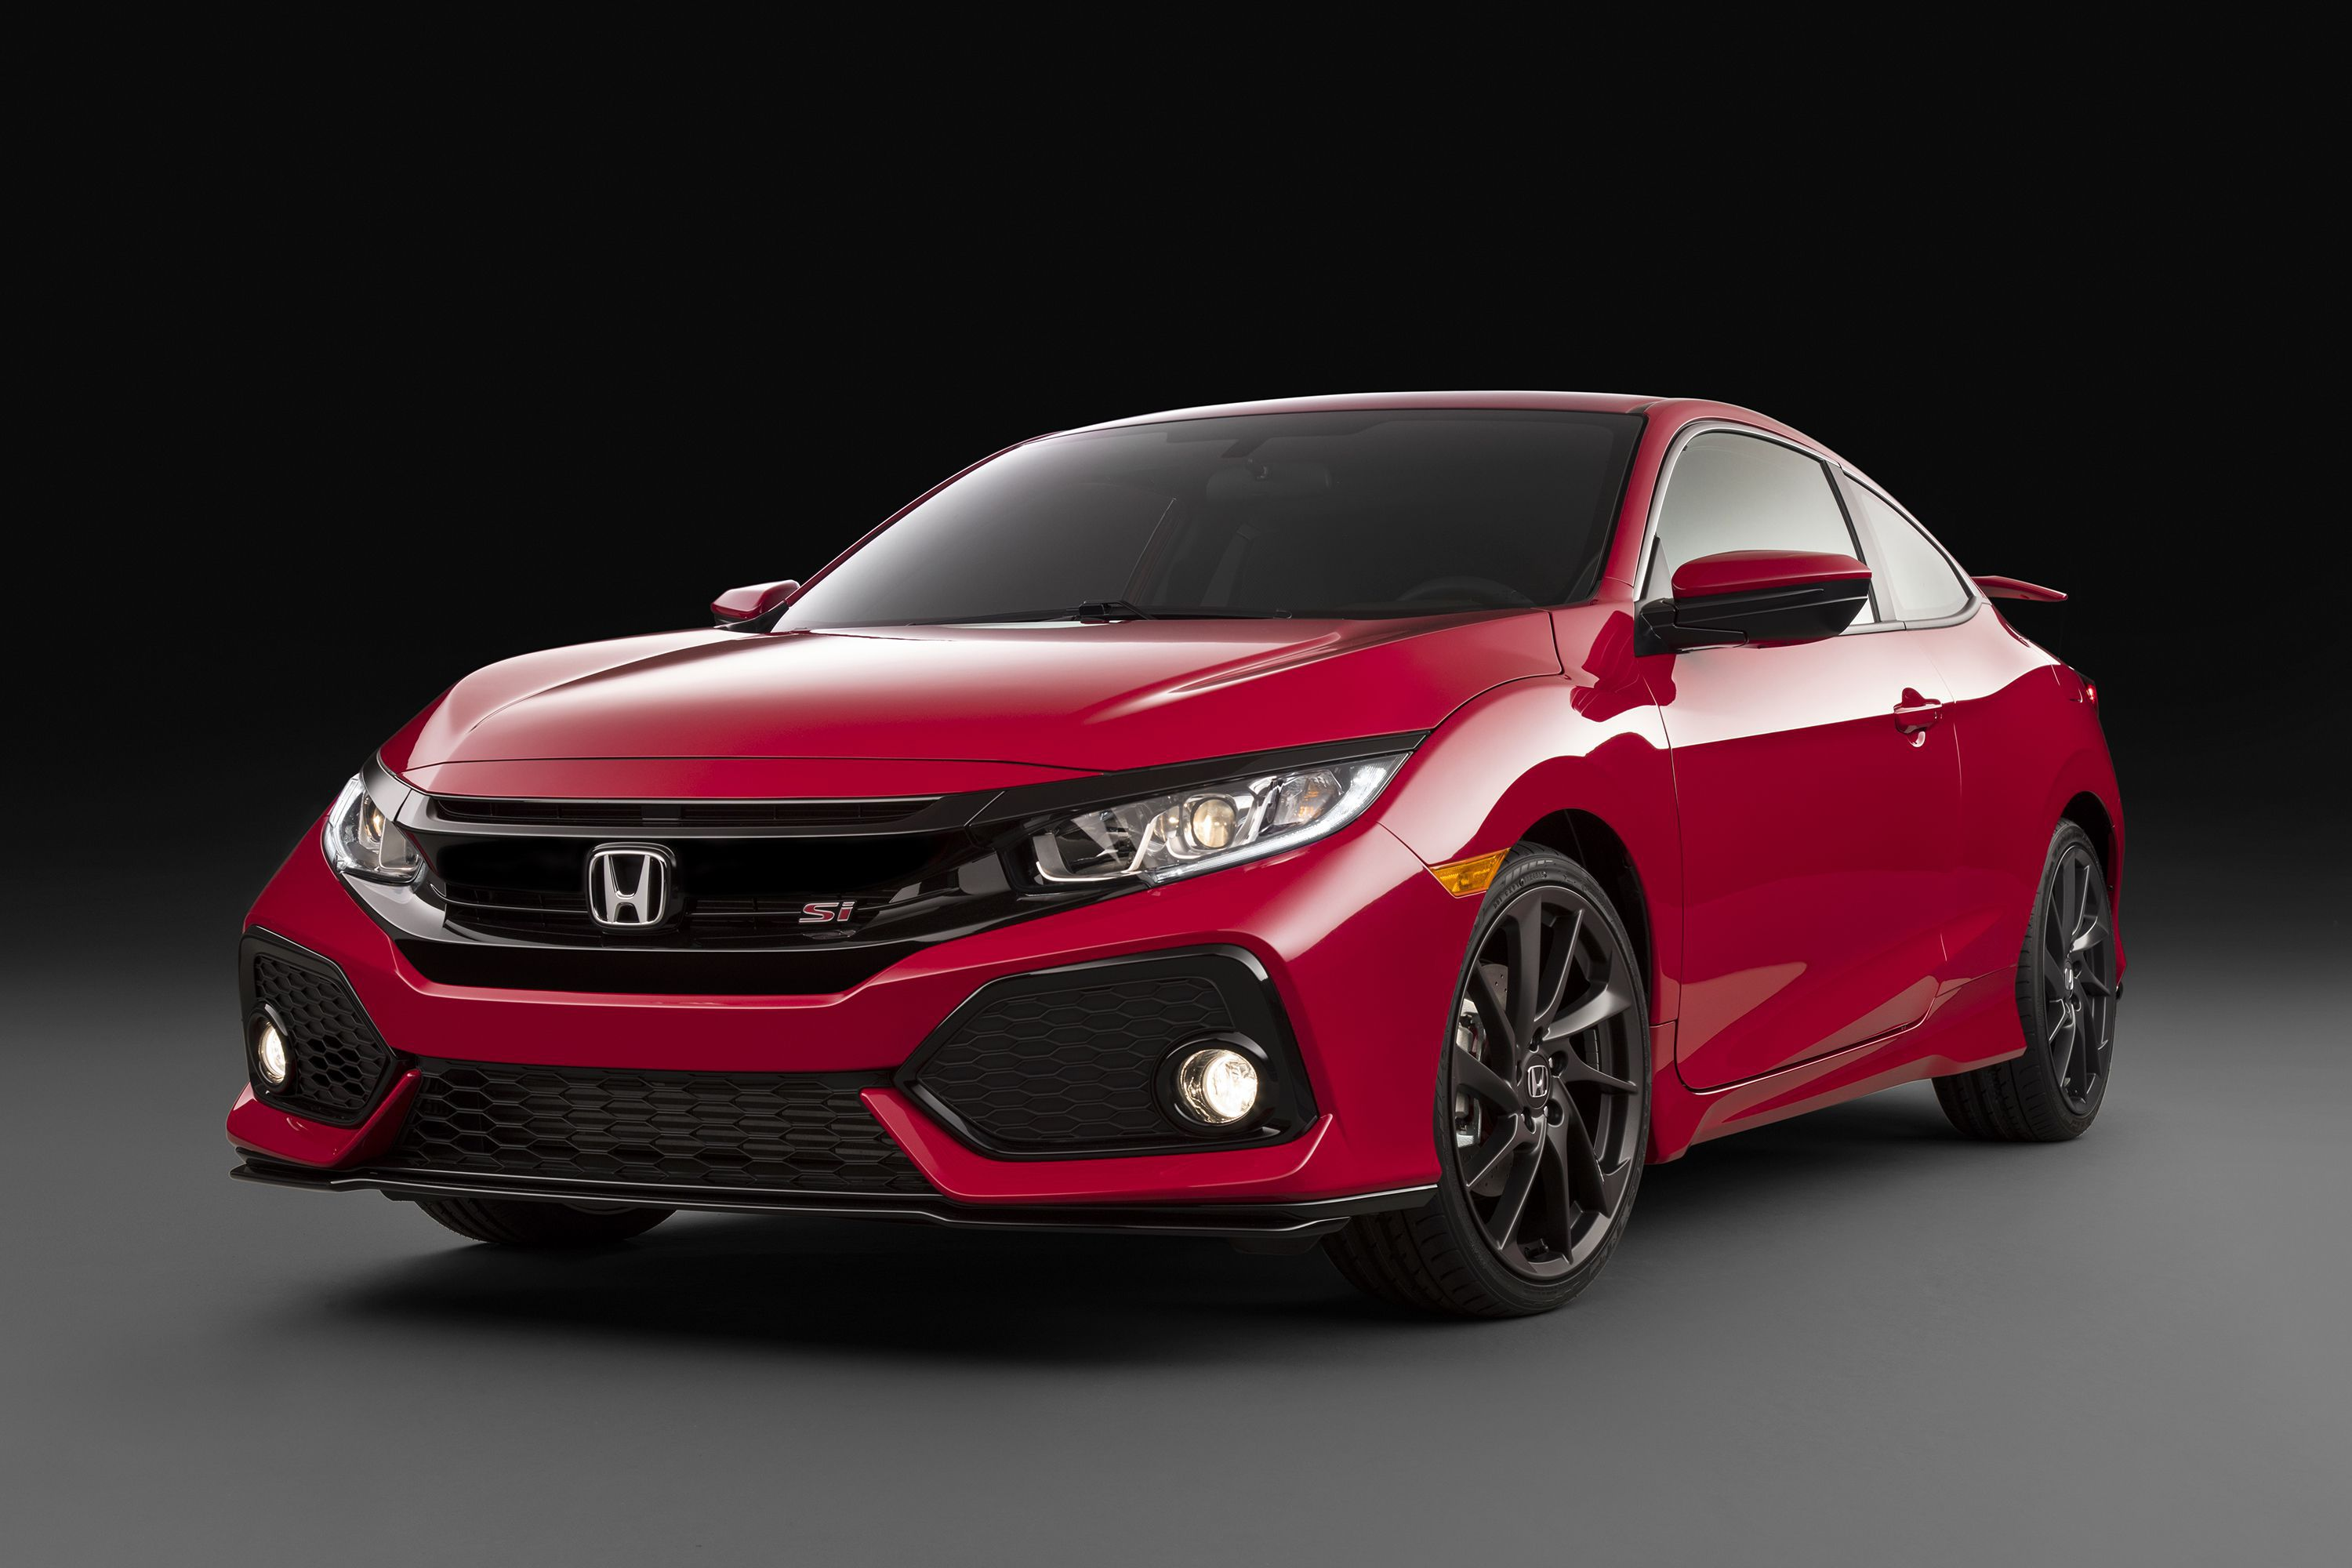 Honda Civic SI 2017, HD Cars, 4k Wallpapers, Images